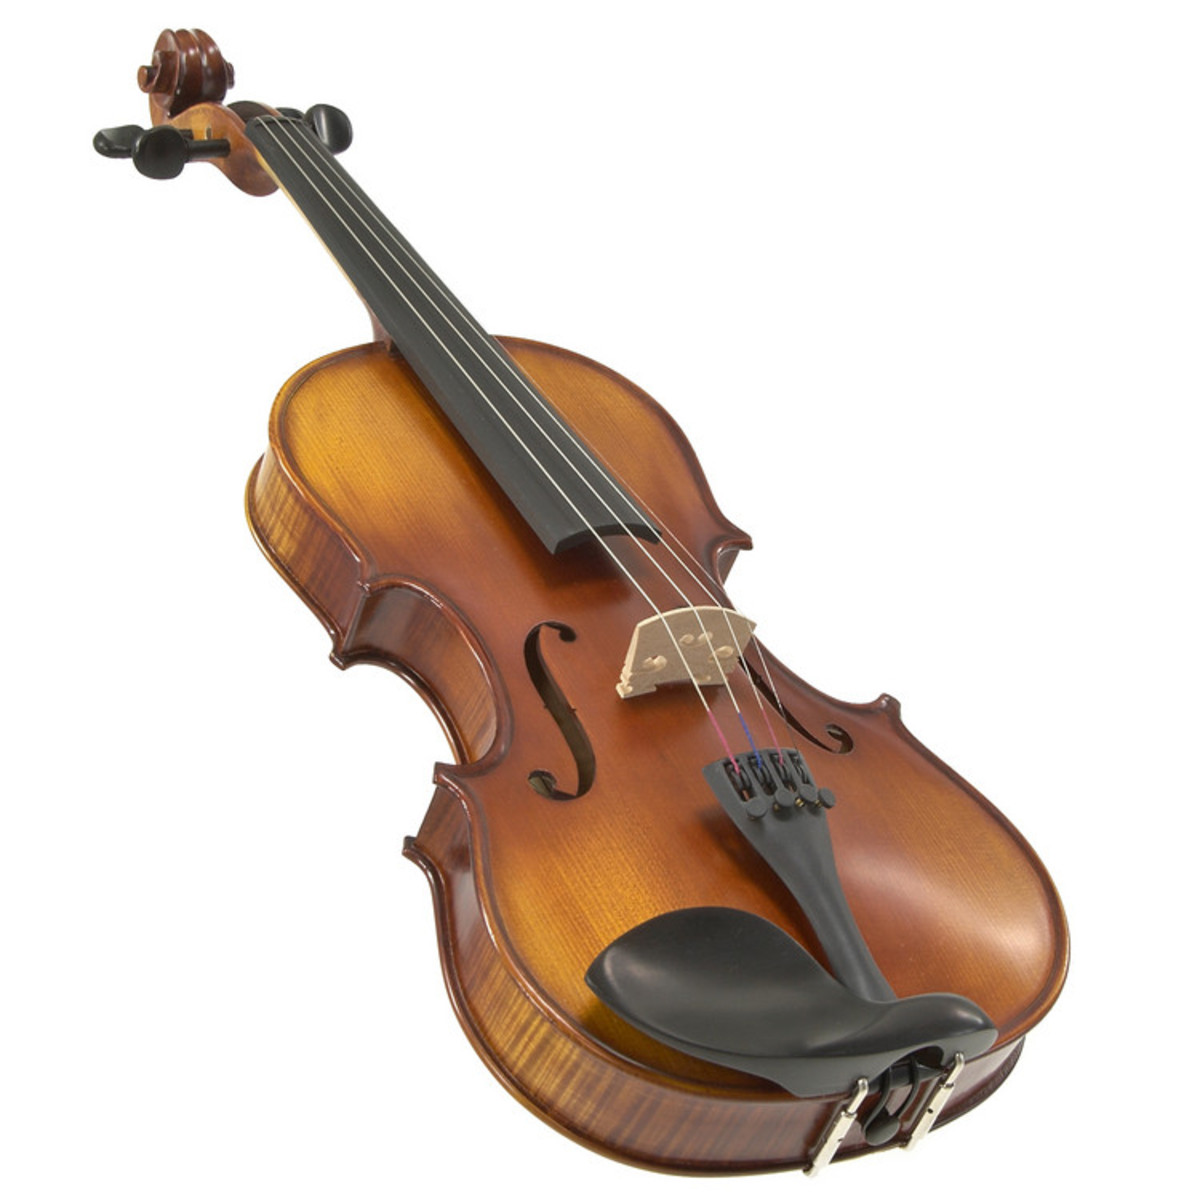 Student plus 3 4 violin antique fade by gear4music at Vibeline